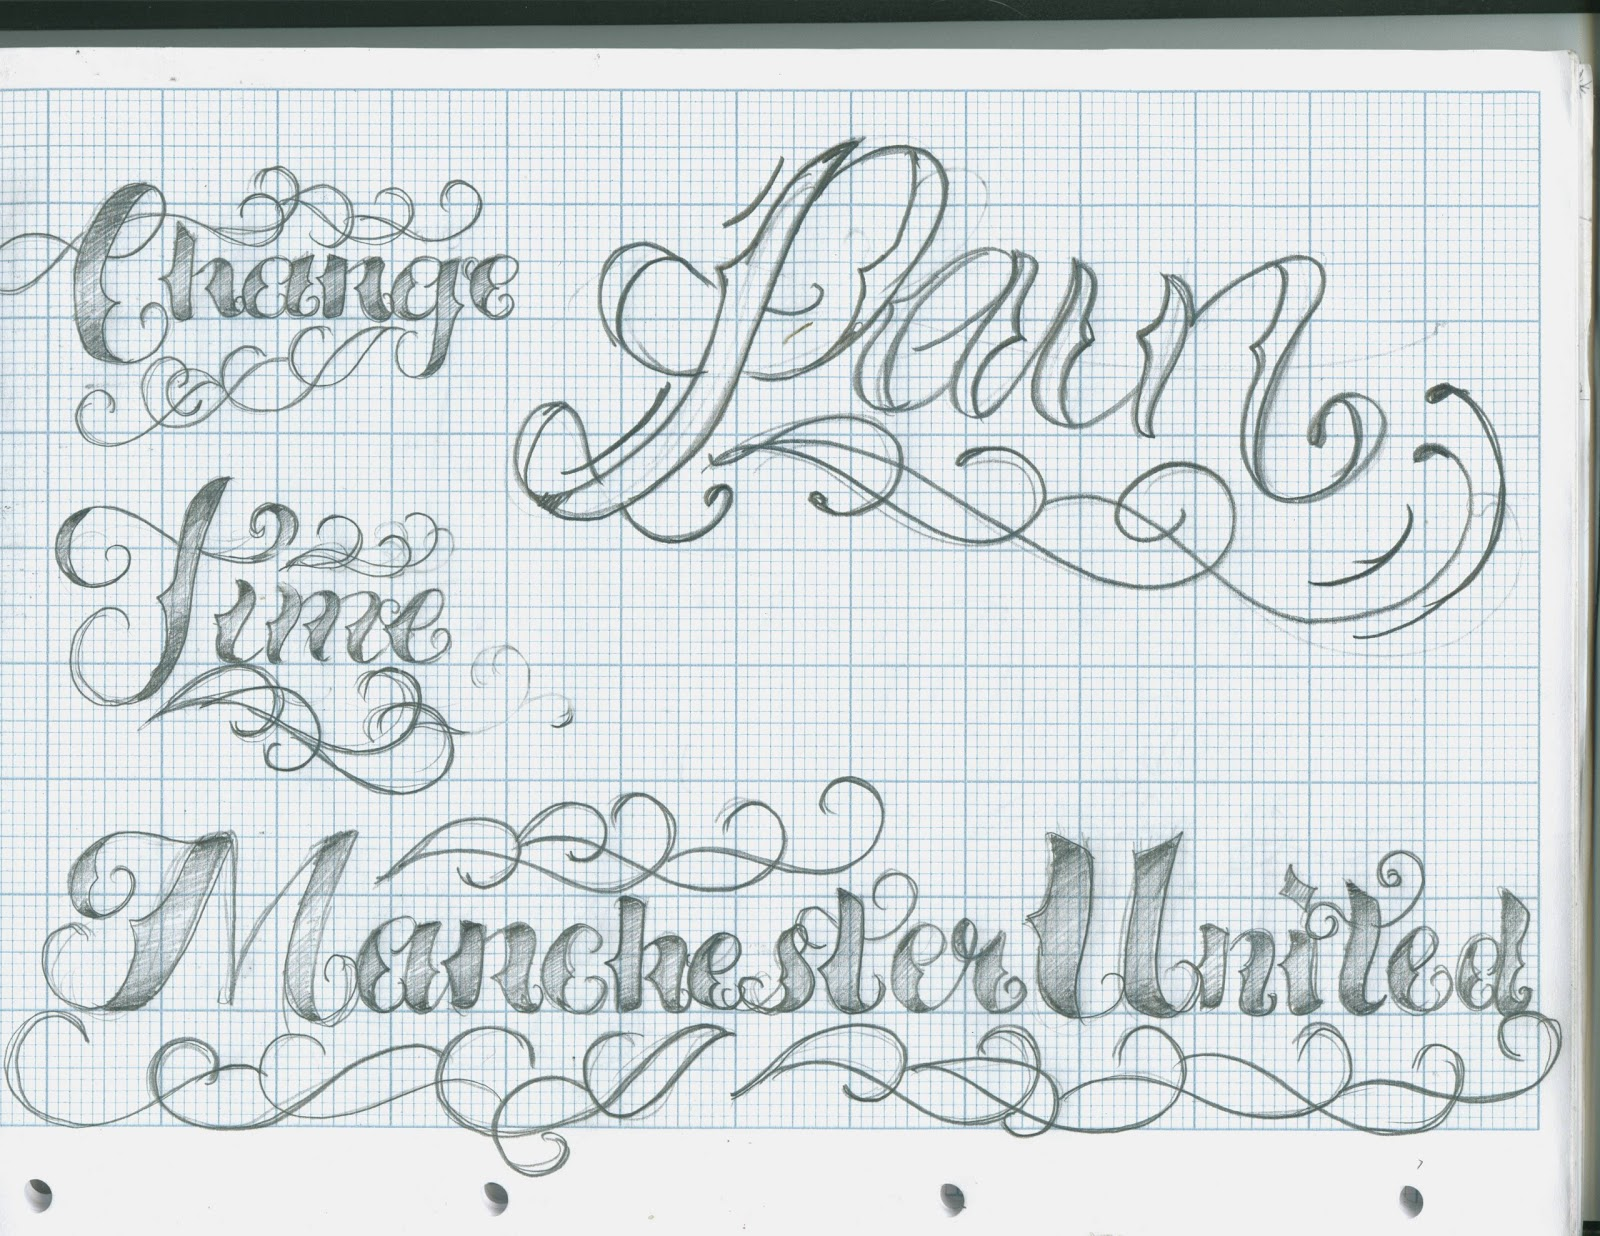 Tattoo Fonts: Tattoo Lettering Script